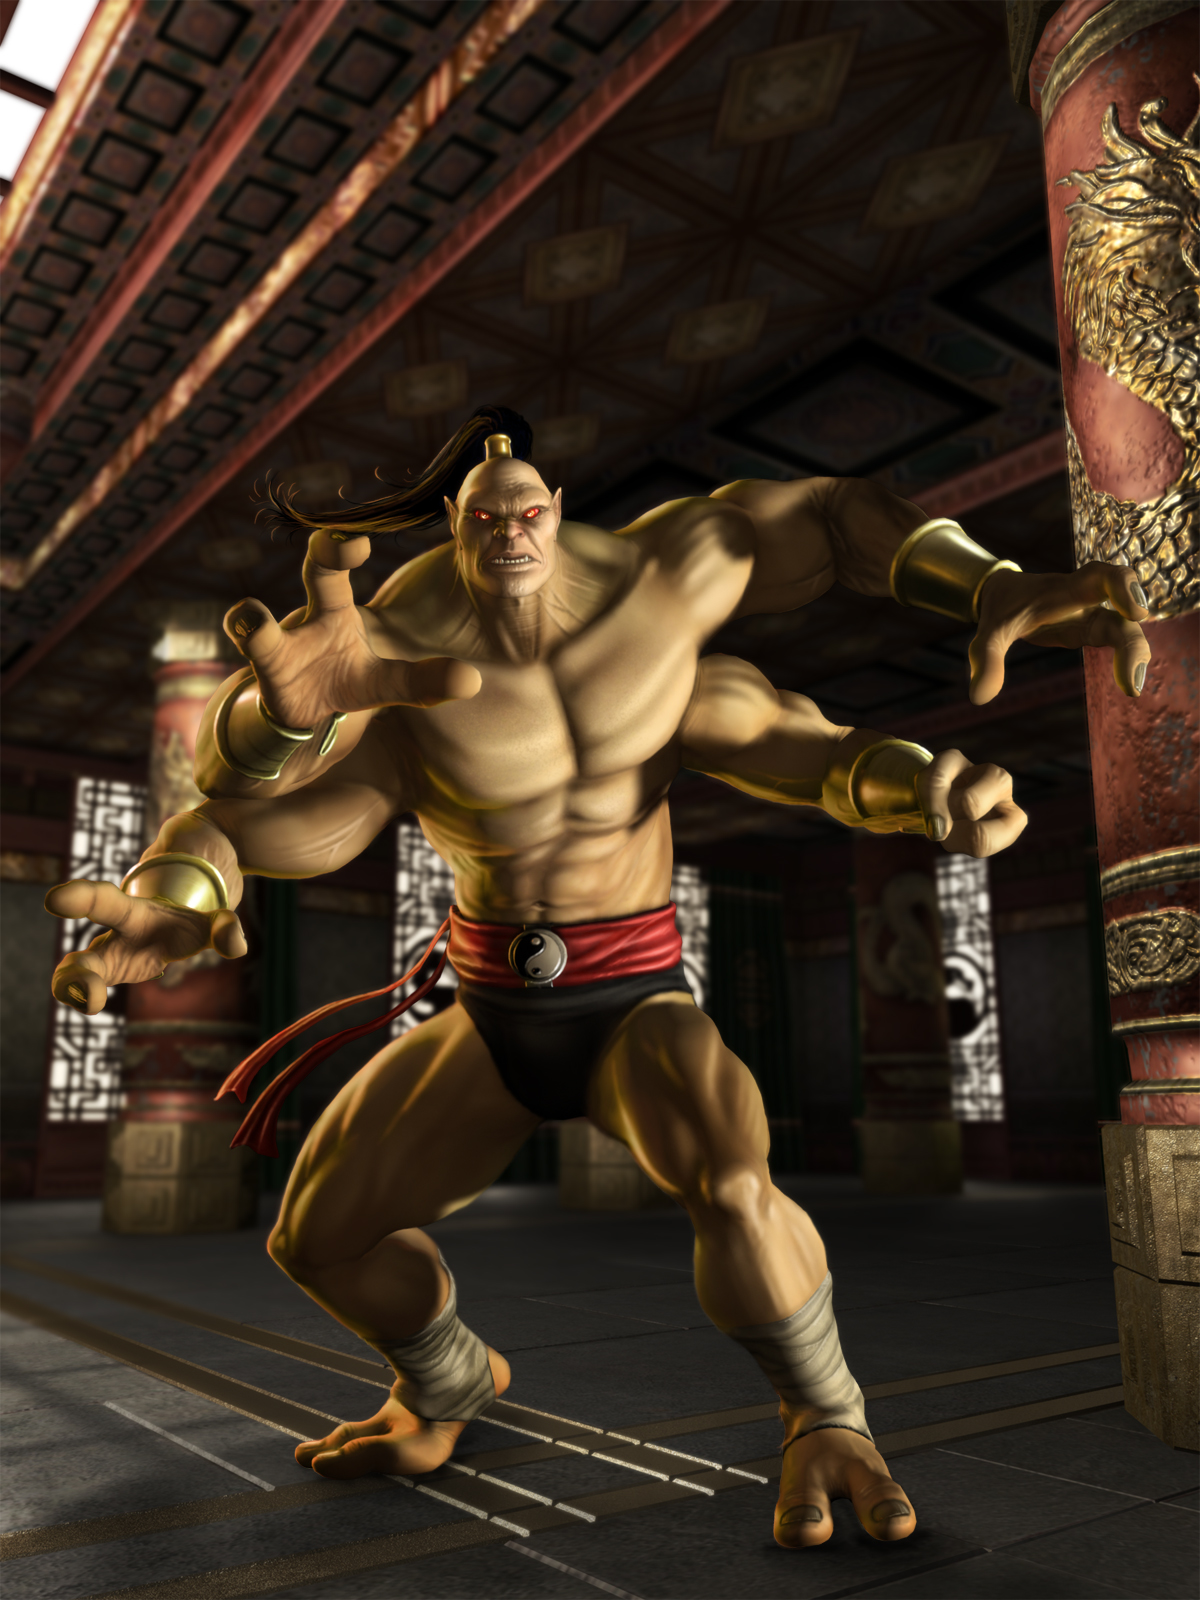 image - goro shaolin monks | mortal kombat wiki | fandom powered